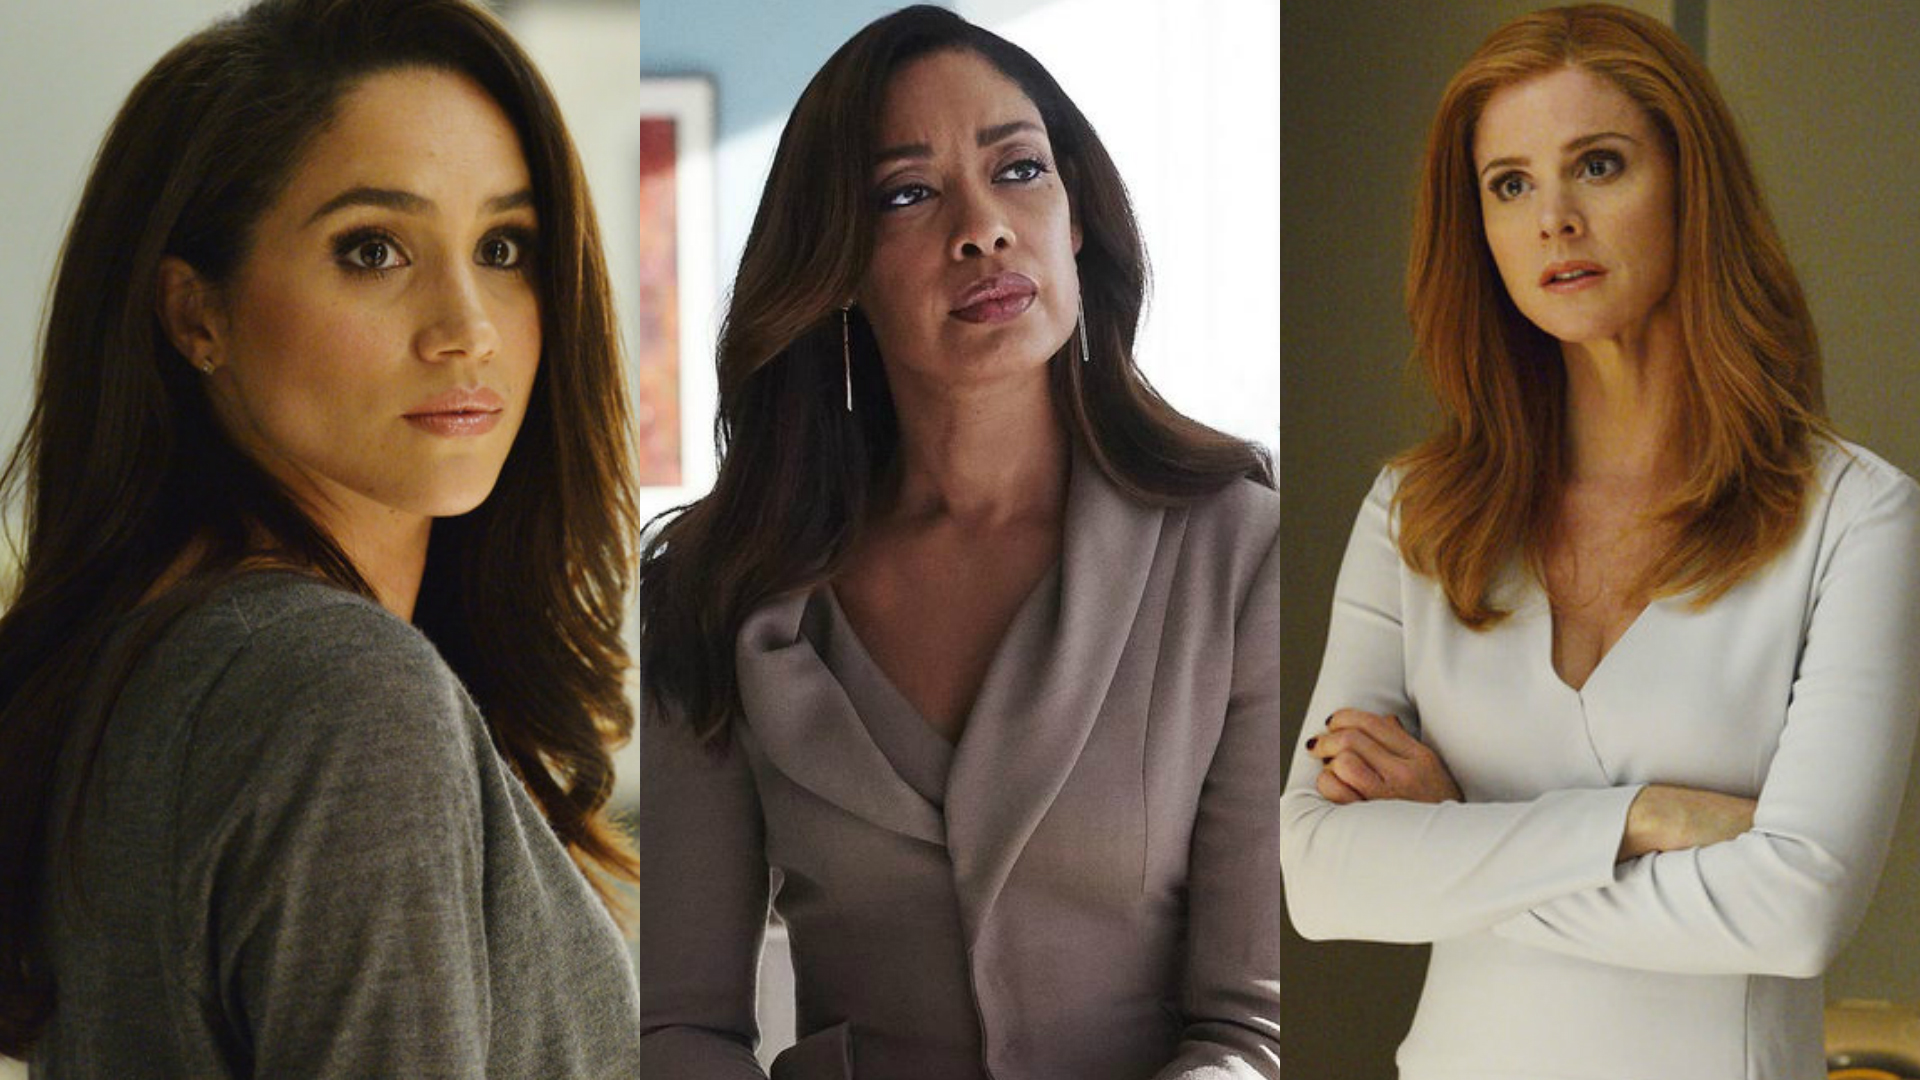 Meghan Markle, Gina Torres and Sarah Rafferty in Suits